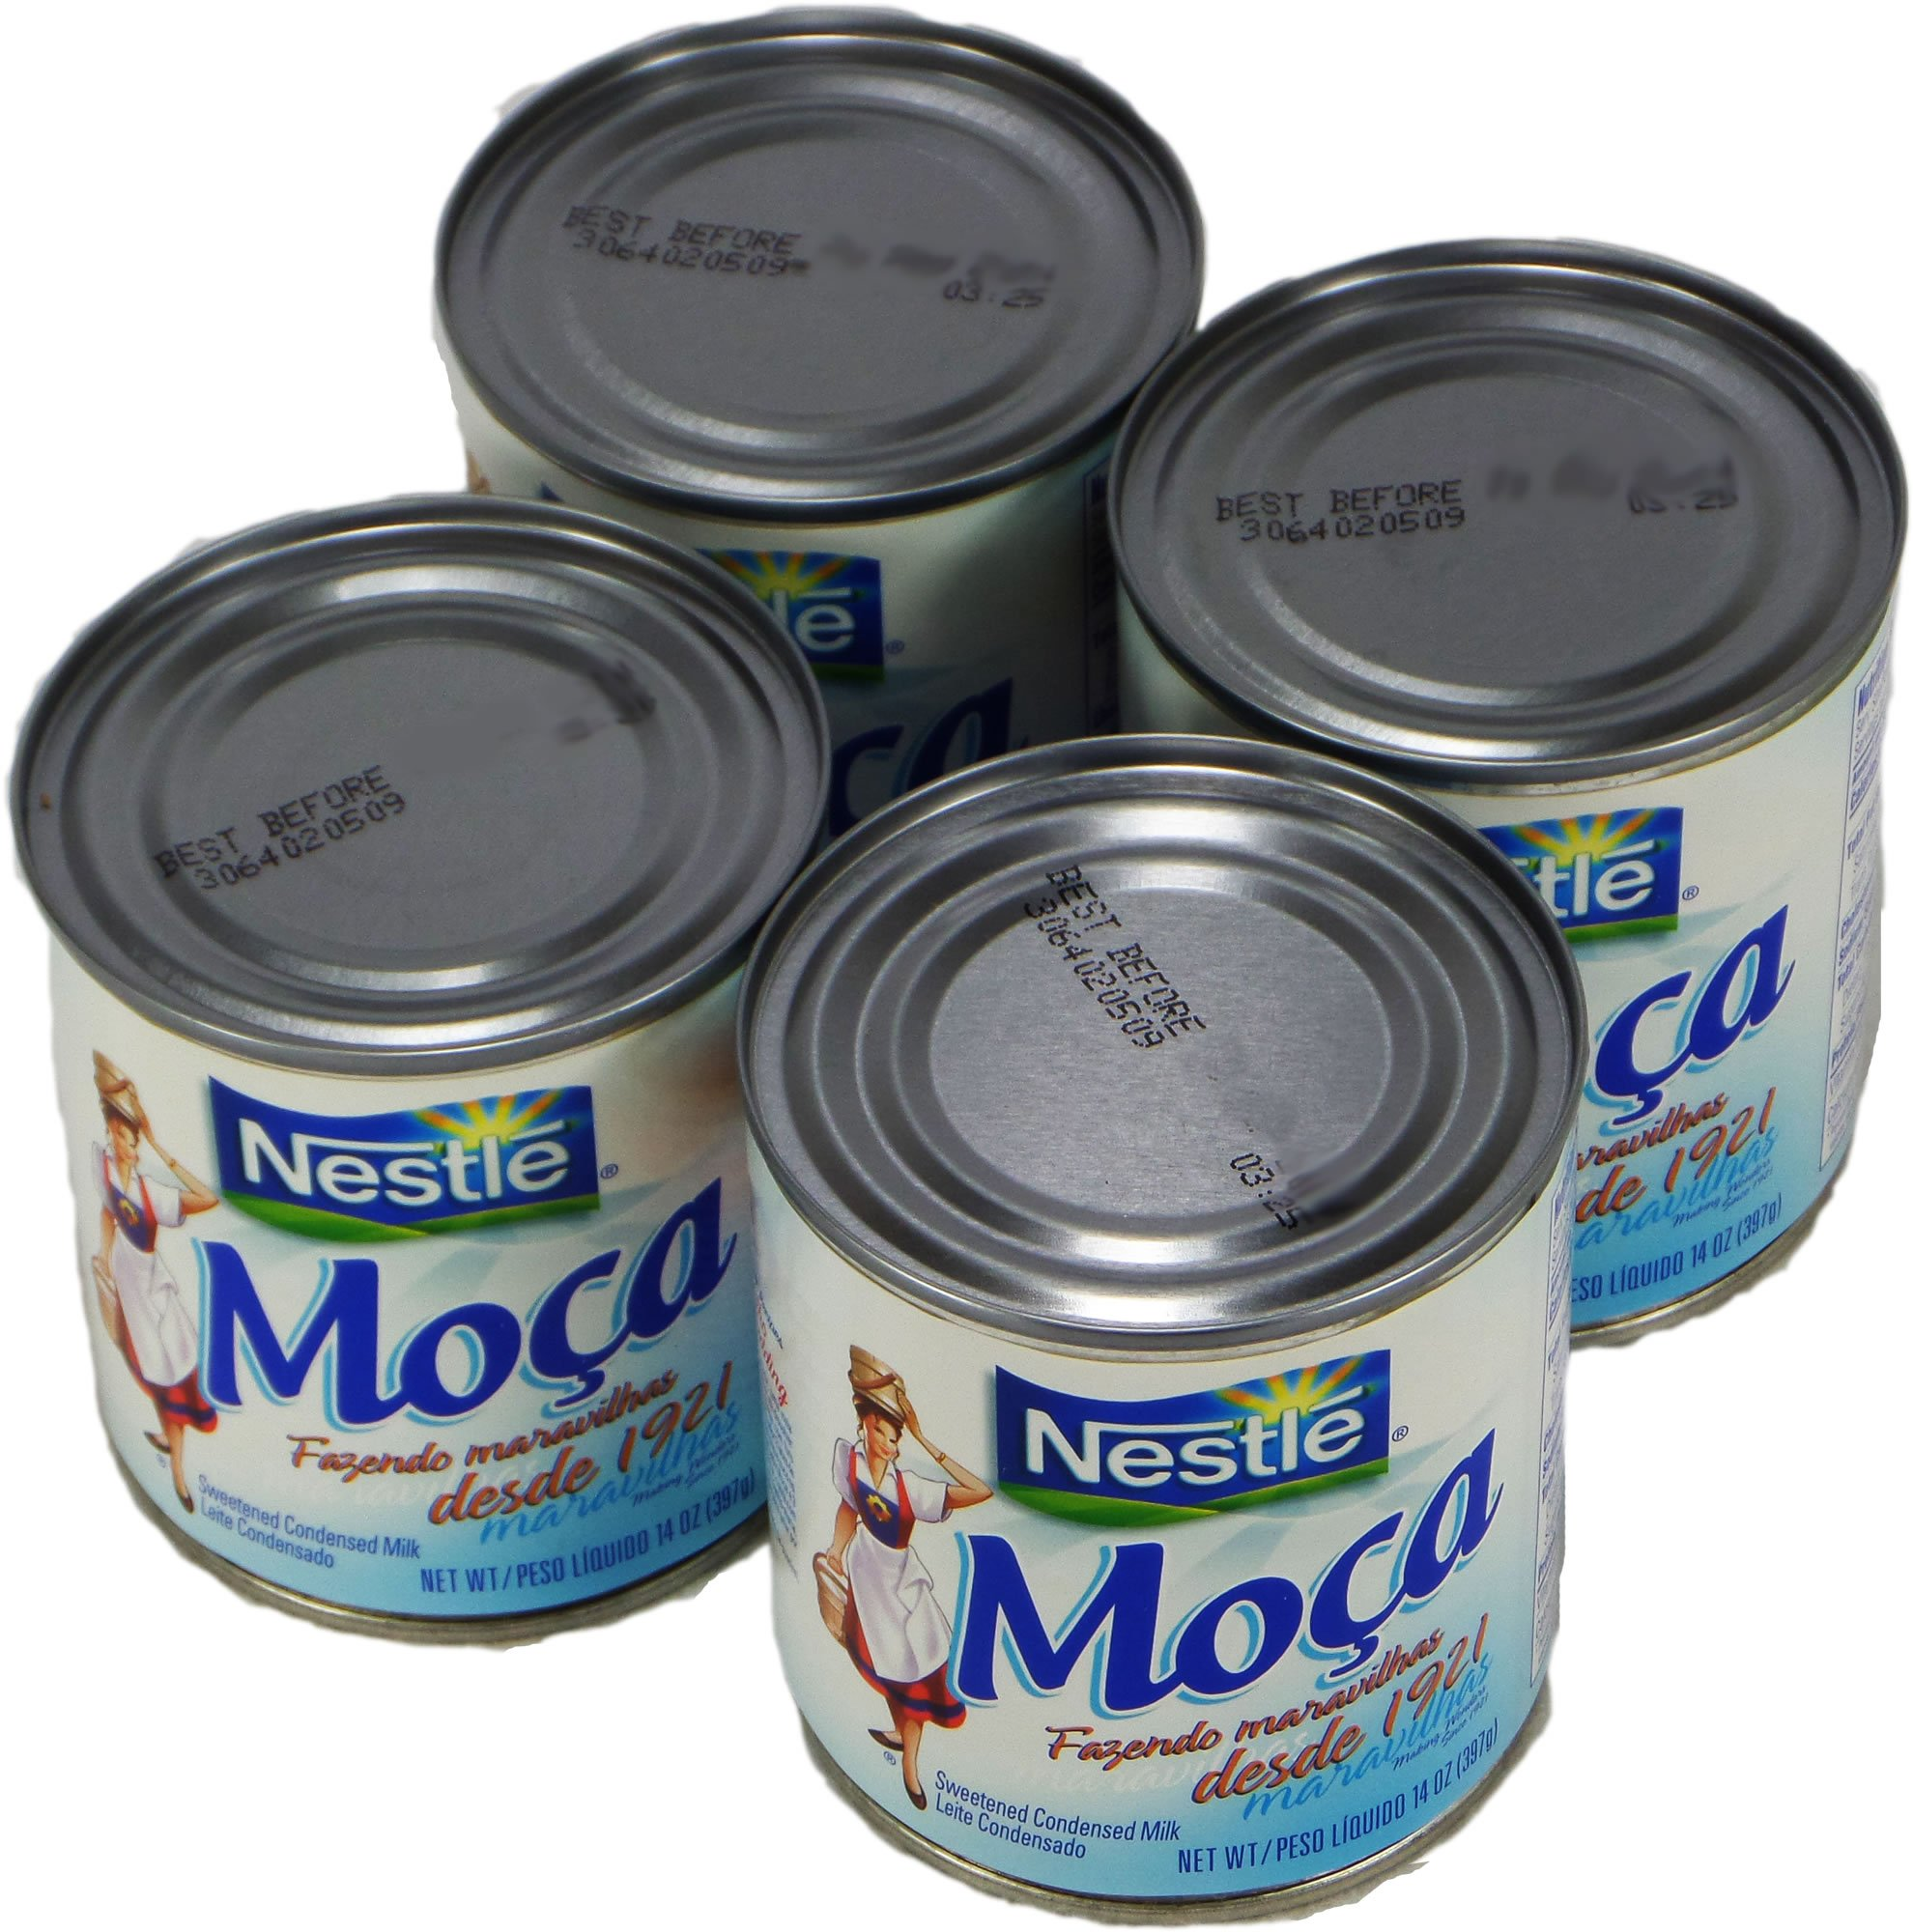 Nestlé Moça Leite Condensado 397g | Sweetened Condensed Milk 14oz. (Pack of 04)